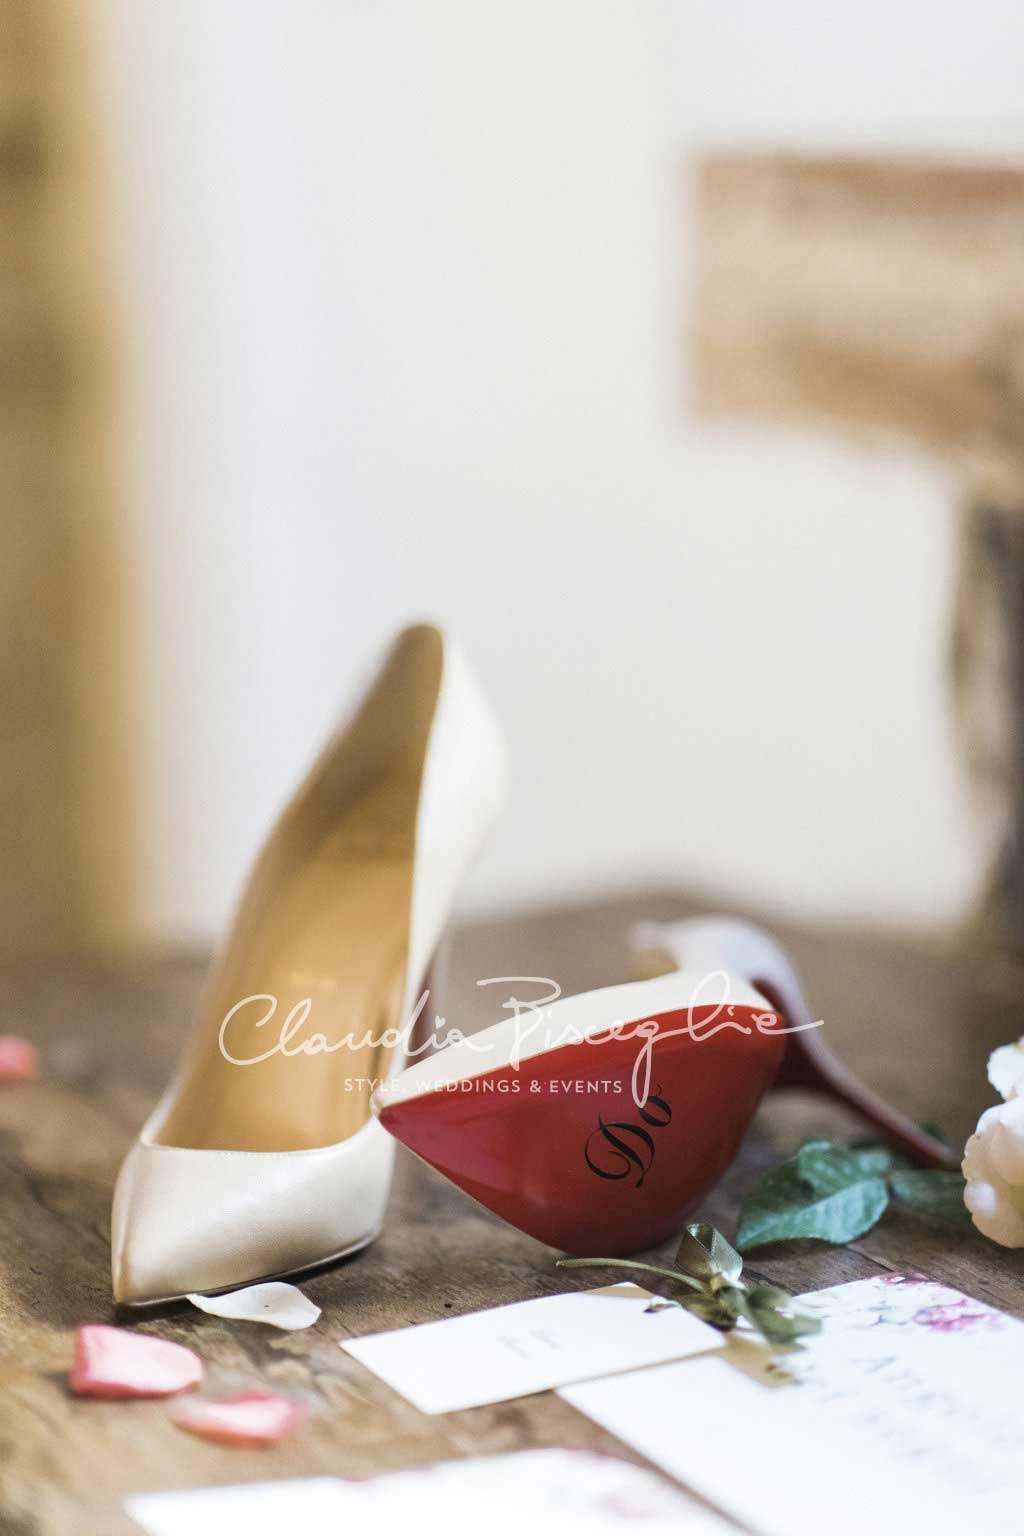 B-bridalshoes-wedding-romantic-ClaudiaBisceglieweddingplanner